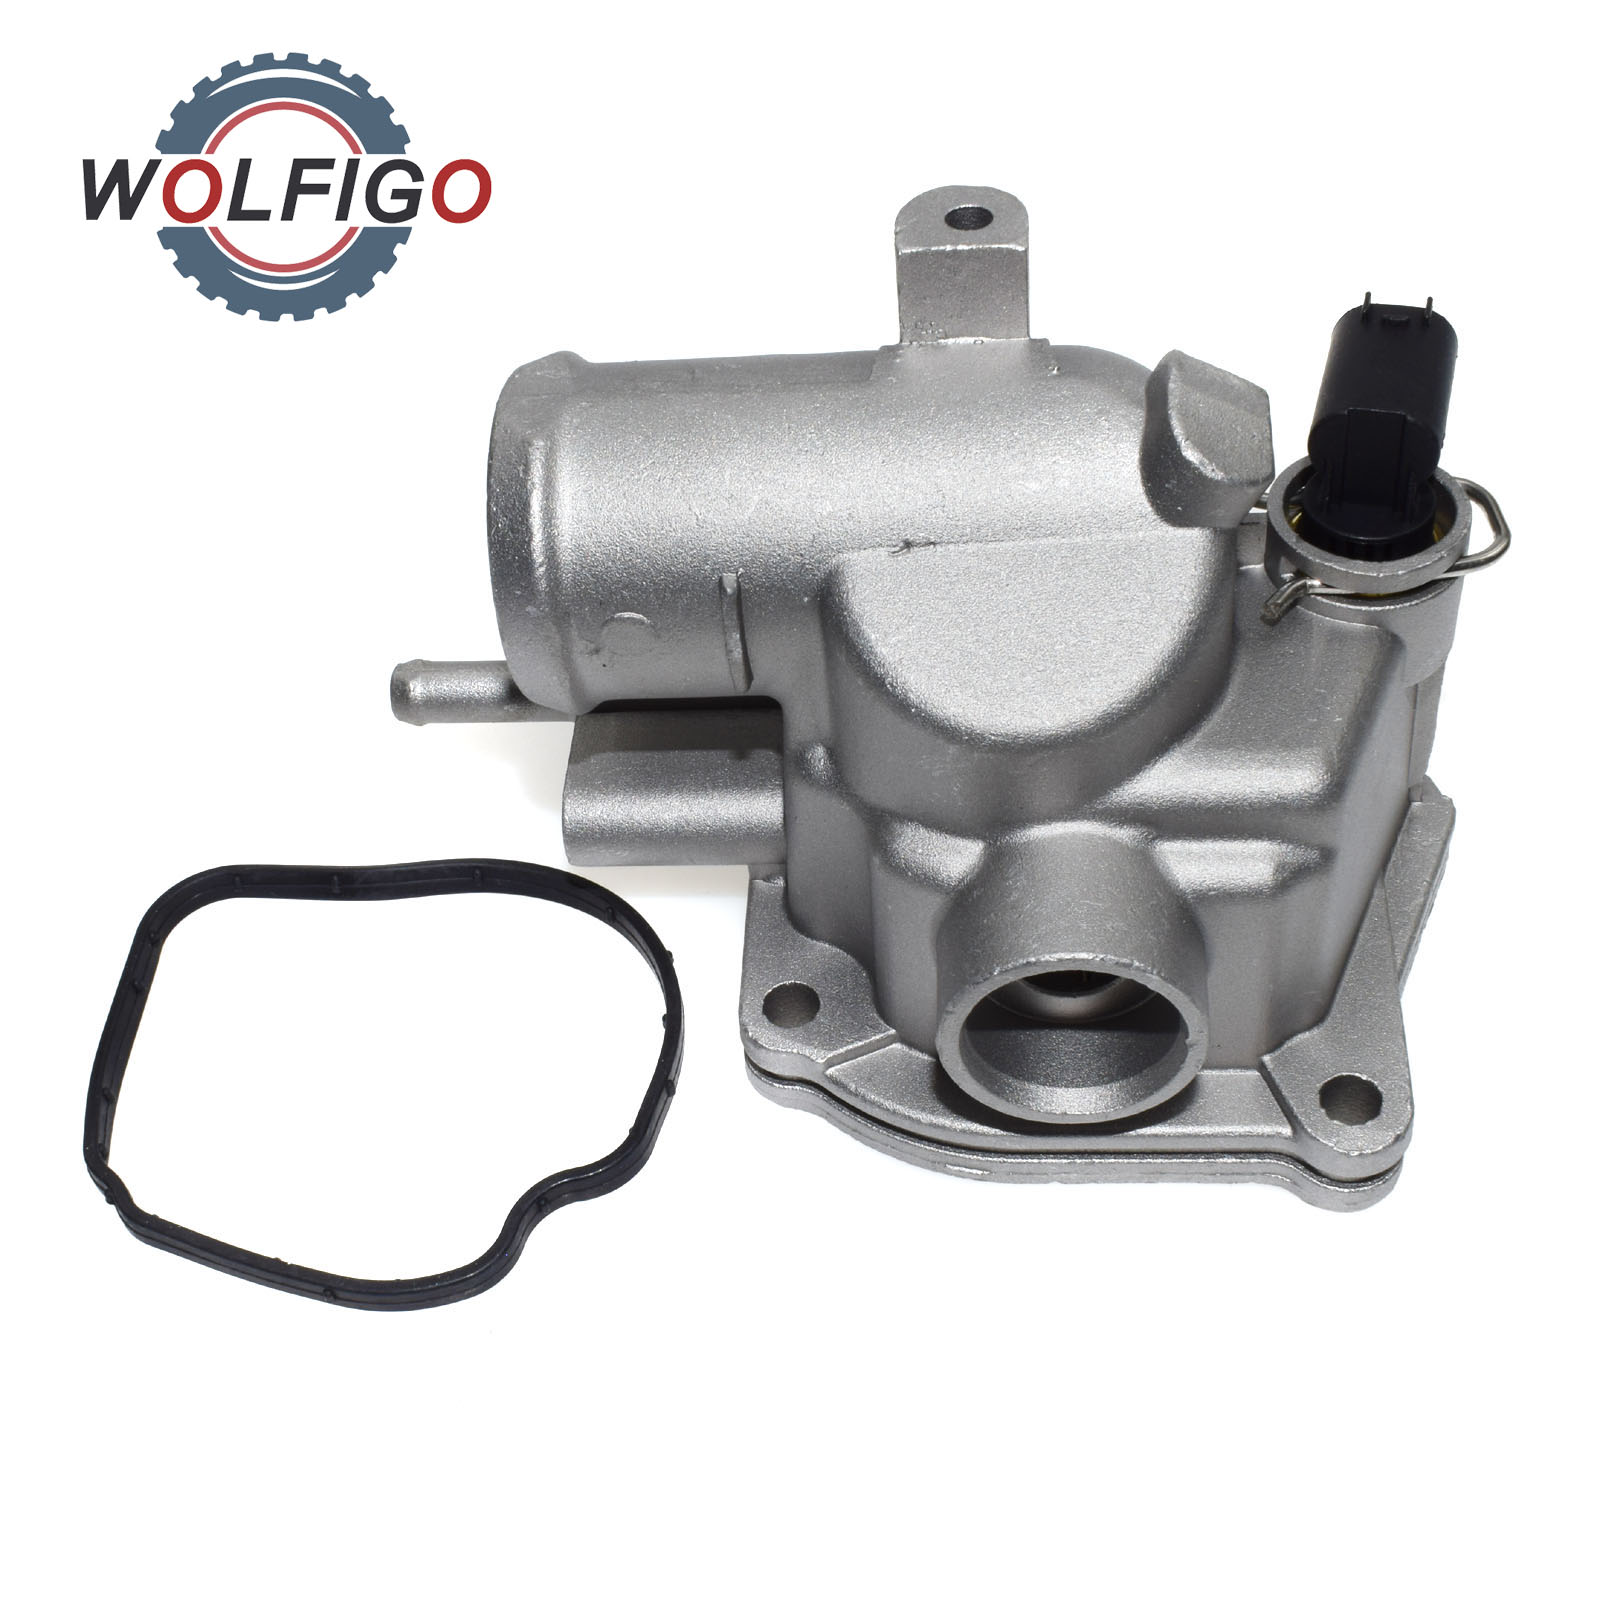 Wolfigo New Engine Coolant Thermostat 6112000515 6112000315 For Hvac Blower Motor Resistor W Wiring Harness 0407 Buick Rainier Mercedes Benz S Class Saloon W210 S210 E200 E220 E270t Cdi In Thermostats Parts From